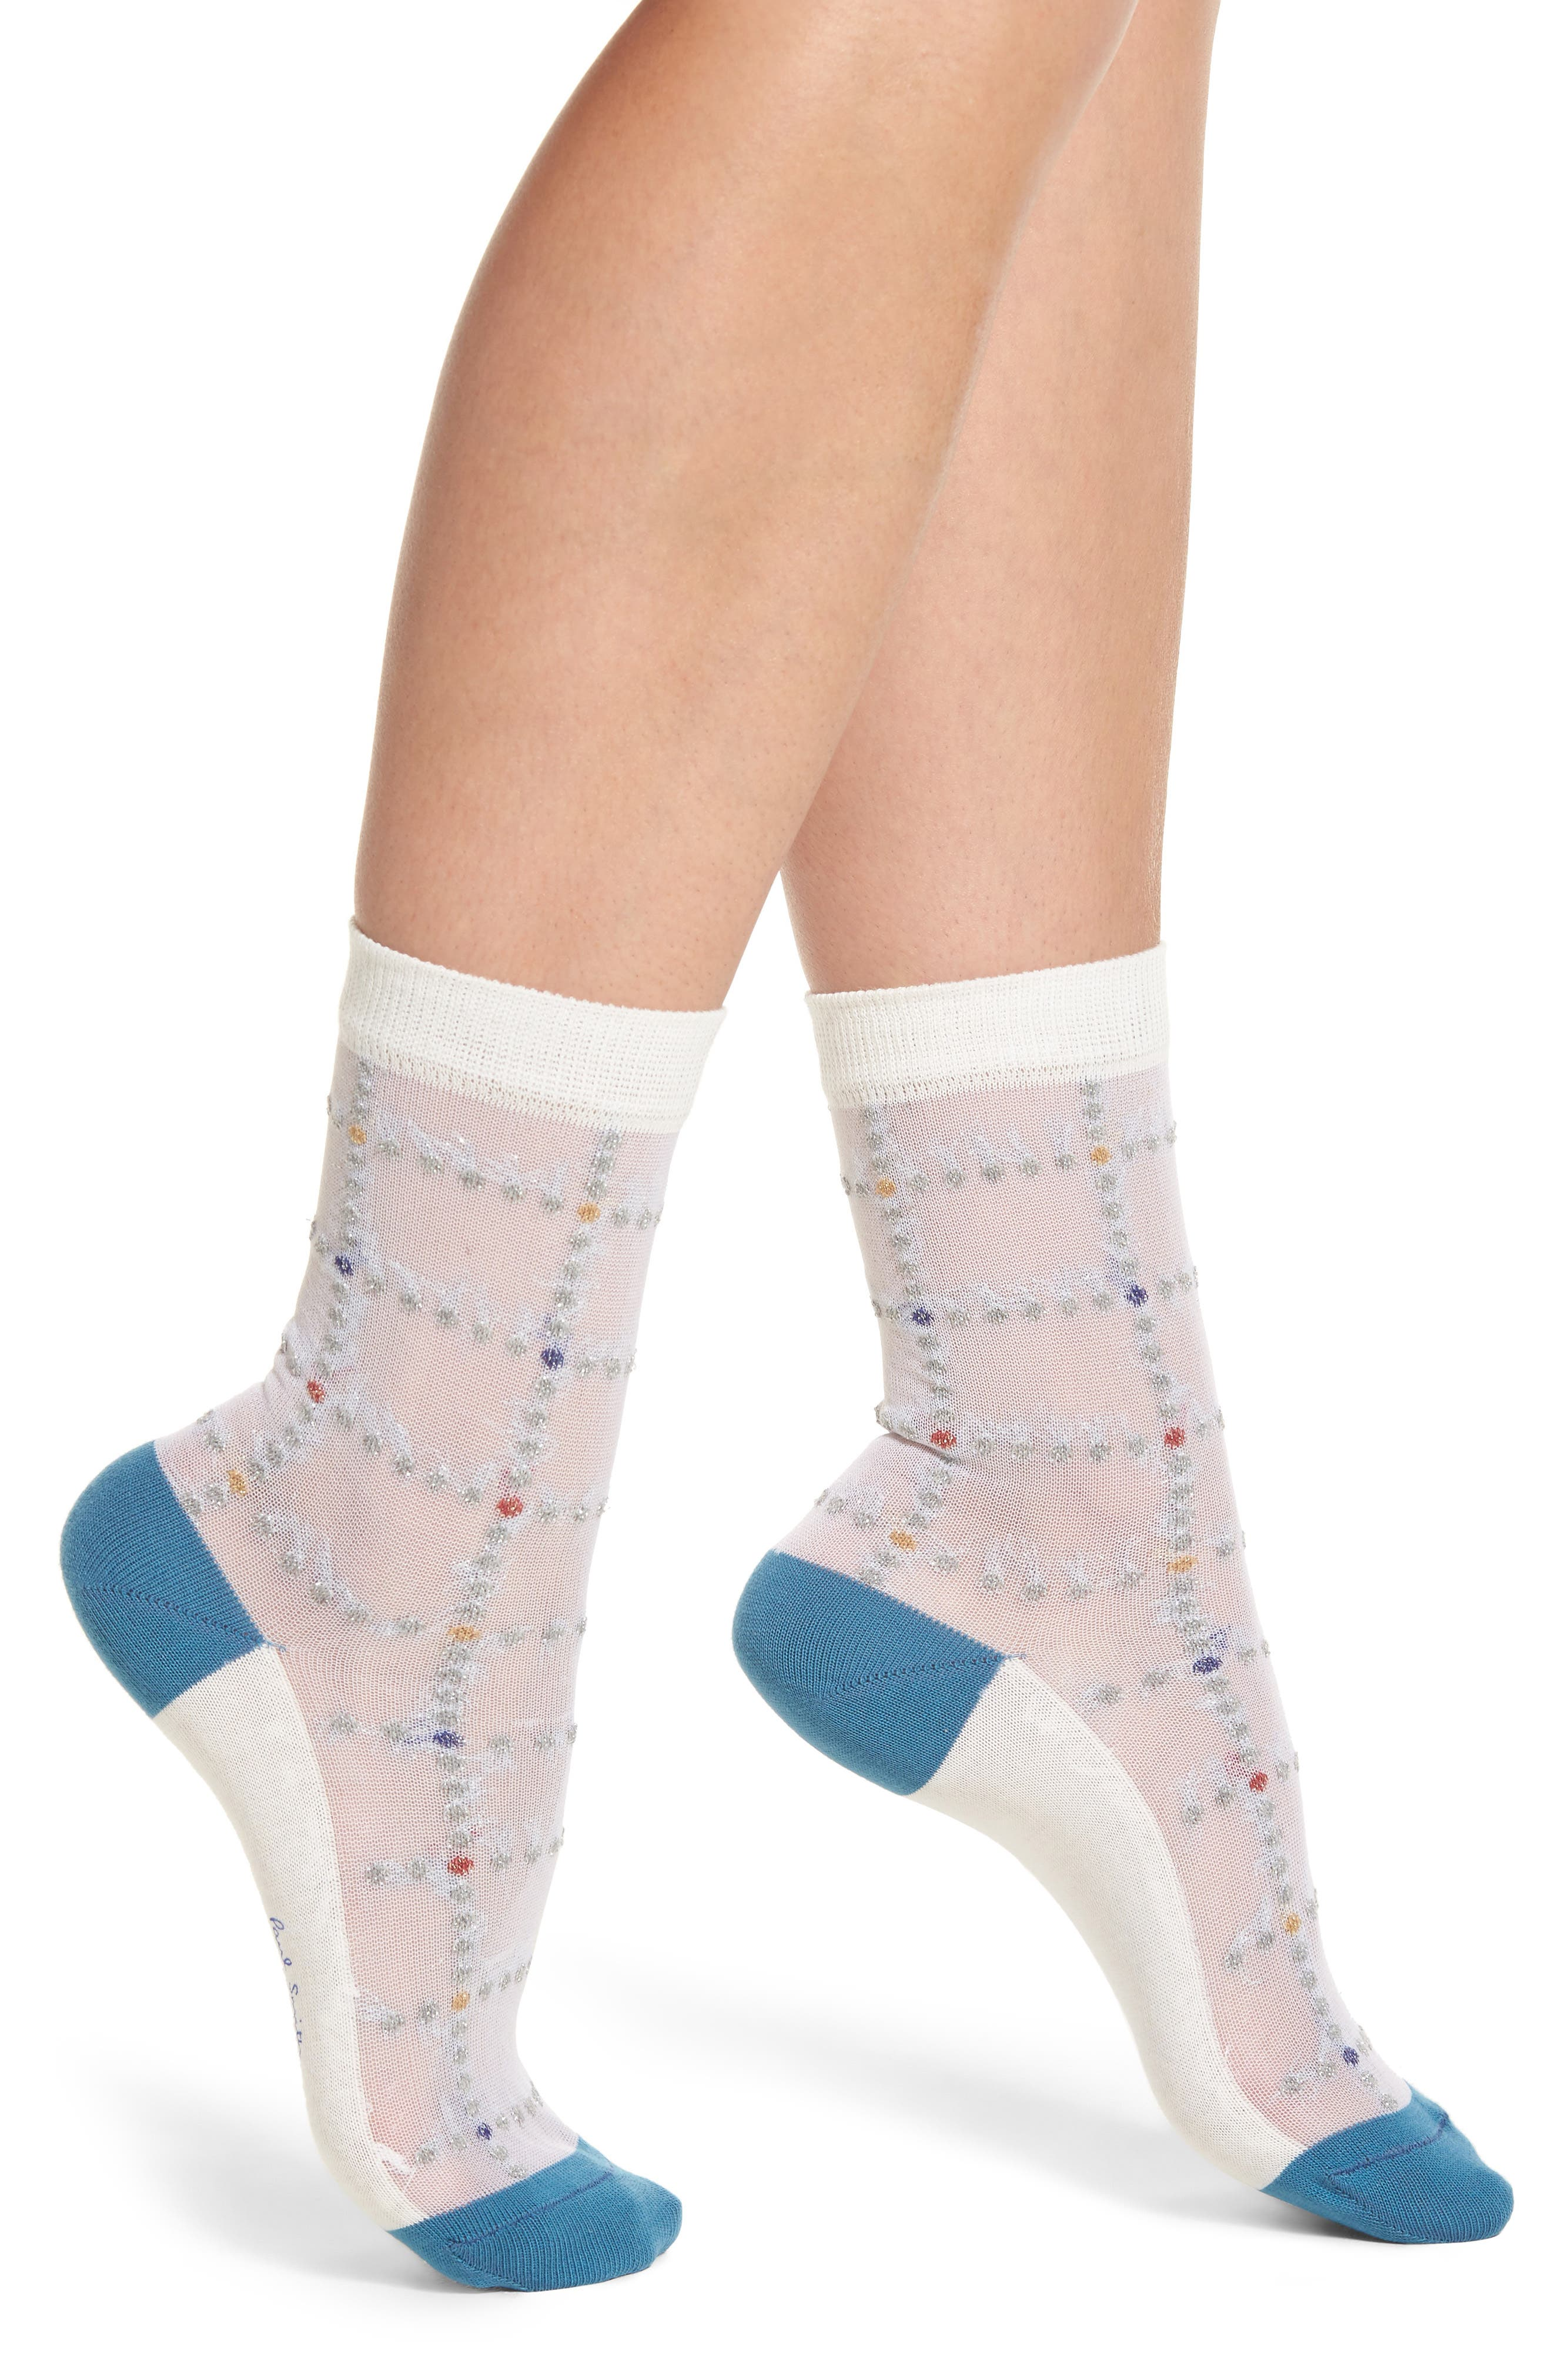 Erin Check Ankle Socks,                             Main thumbnail 1, color,